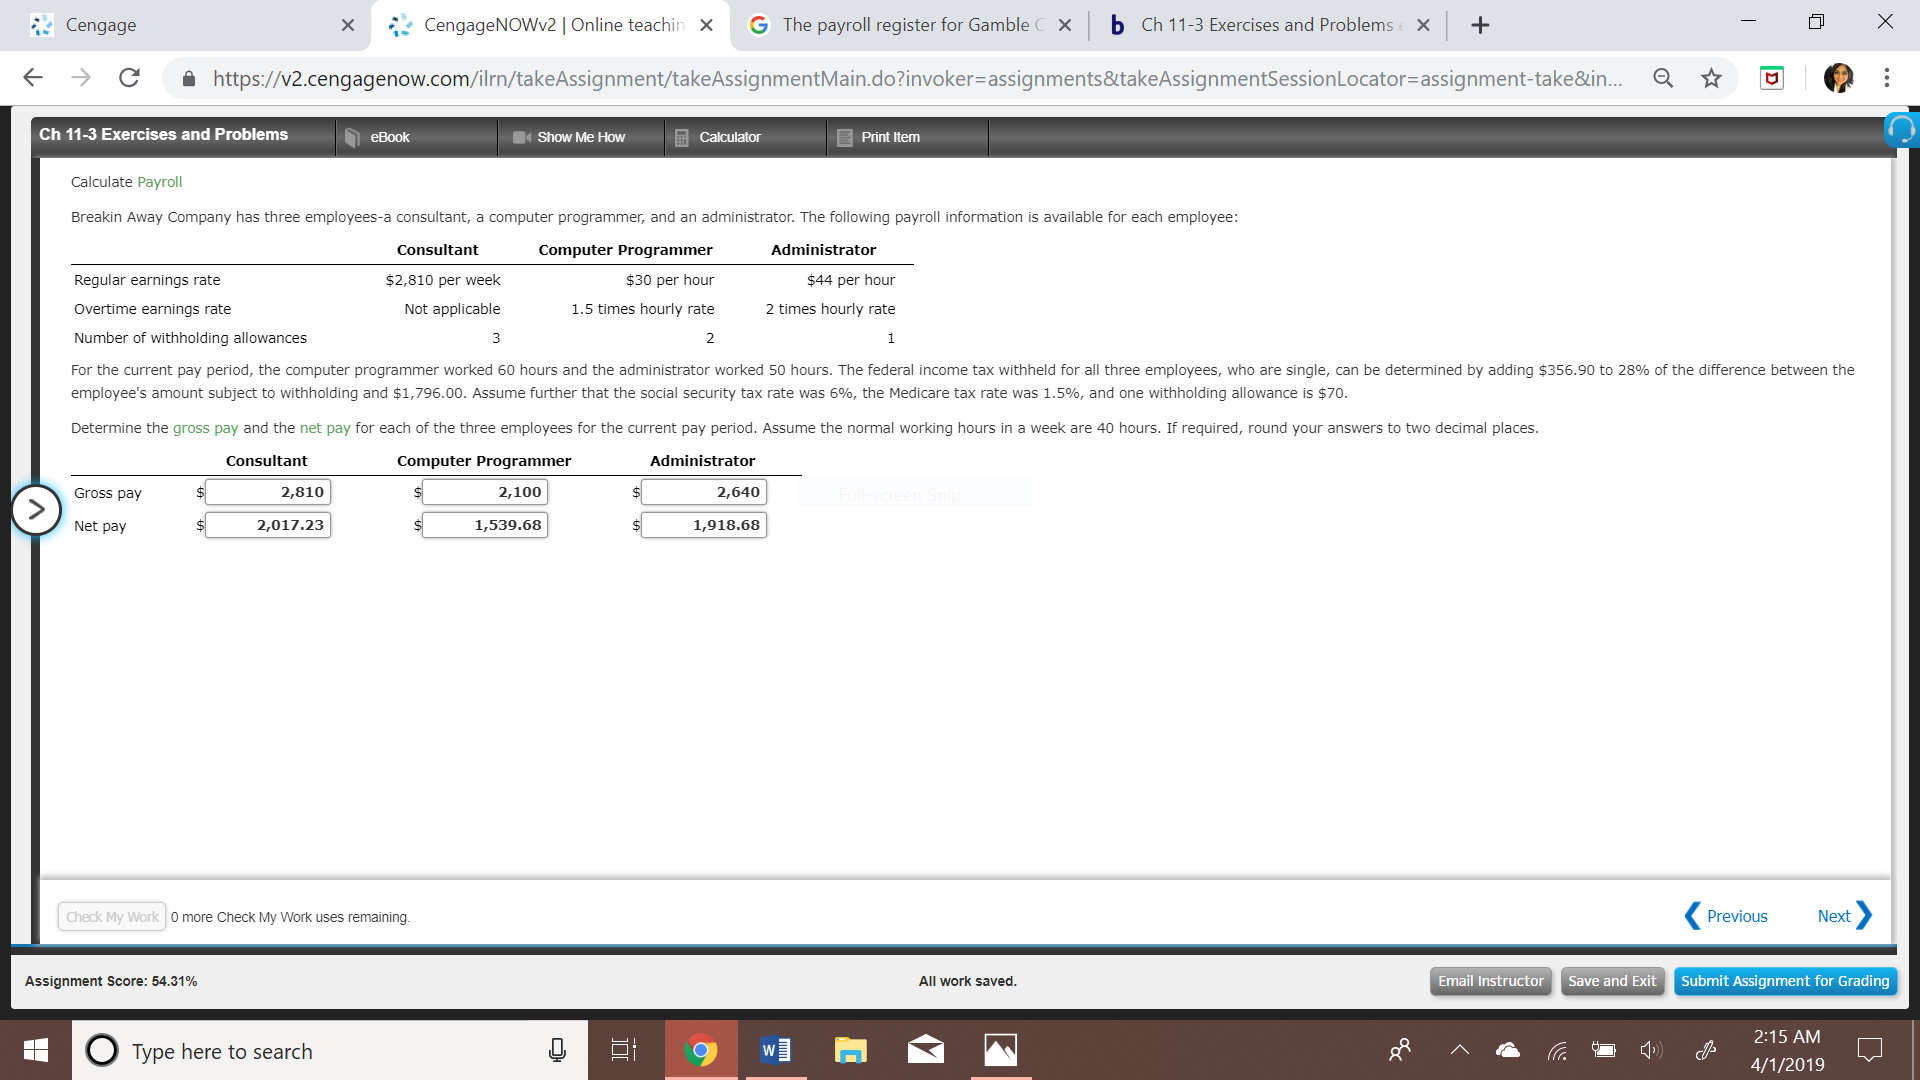 Cengage xCengageNOWv2 | Online teachin G The payroll register for Gamble C x b Ch 11-3 Exercises and Problems+ ← → C â https://v2.cengagenow.com/ilrn/takeAssignment takeAssignmentMain doinvoker-assignments&takeAssignmentSessionLocator-assignment take&n Q ☆ Ch 11-3 Exercises and Problems eBook Show Me Hovw Calculator Print Itemm Calculate Payroll Breakin Away Company has three employees-a consultant, a computer programmer, and an administrator. The following payroll information is available for each employee Consultant Administrator Computer Programmer $30 per hour 1.5 times hourly rate 2 $2,810 per week $44 per hour Regular earnings rate Overtime earnings rate Number of withholding allowances For the current pay period, the computer programmer worked 60 hours and the administrator worked 50 hours. The federal income tax withheld for all three employees who are single can be determined by adding $356.90 to 28% of the difference between the employee's amount subject to withholding and $1,796.00. Assume further that the social security tax rate was 6%, the Medicare tax rate was 1.5%, and one withholding allowance is $70 Determine the gross pay and the net pay for each of the three employees for the current pay period. Assume the normal working hours in a week are 40 hours. If required, round your answers to two decimal places Not applicable 2 times hourly rate Consultant Administrator 2,640 1,918.68 Computer Programmer Gross pay 2,810 2,100 Net pay 2,017.23 1,539.68 Check My Work 0 more Check My Work uses remaining Previous Next Assignment Score: 54.31% All work saved Email InstructorSave and Exit Submit Assignment for Grading 2:15 AM Tvpe here to search 4/1/2019